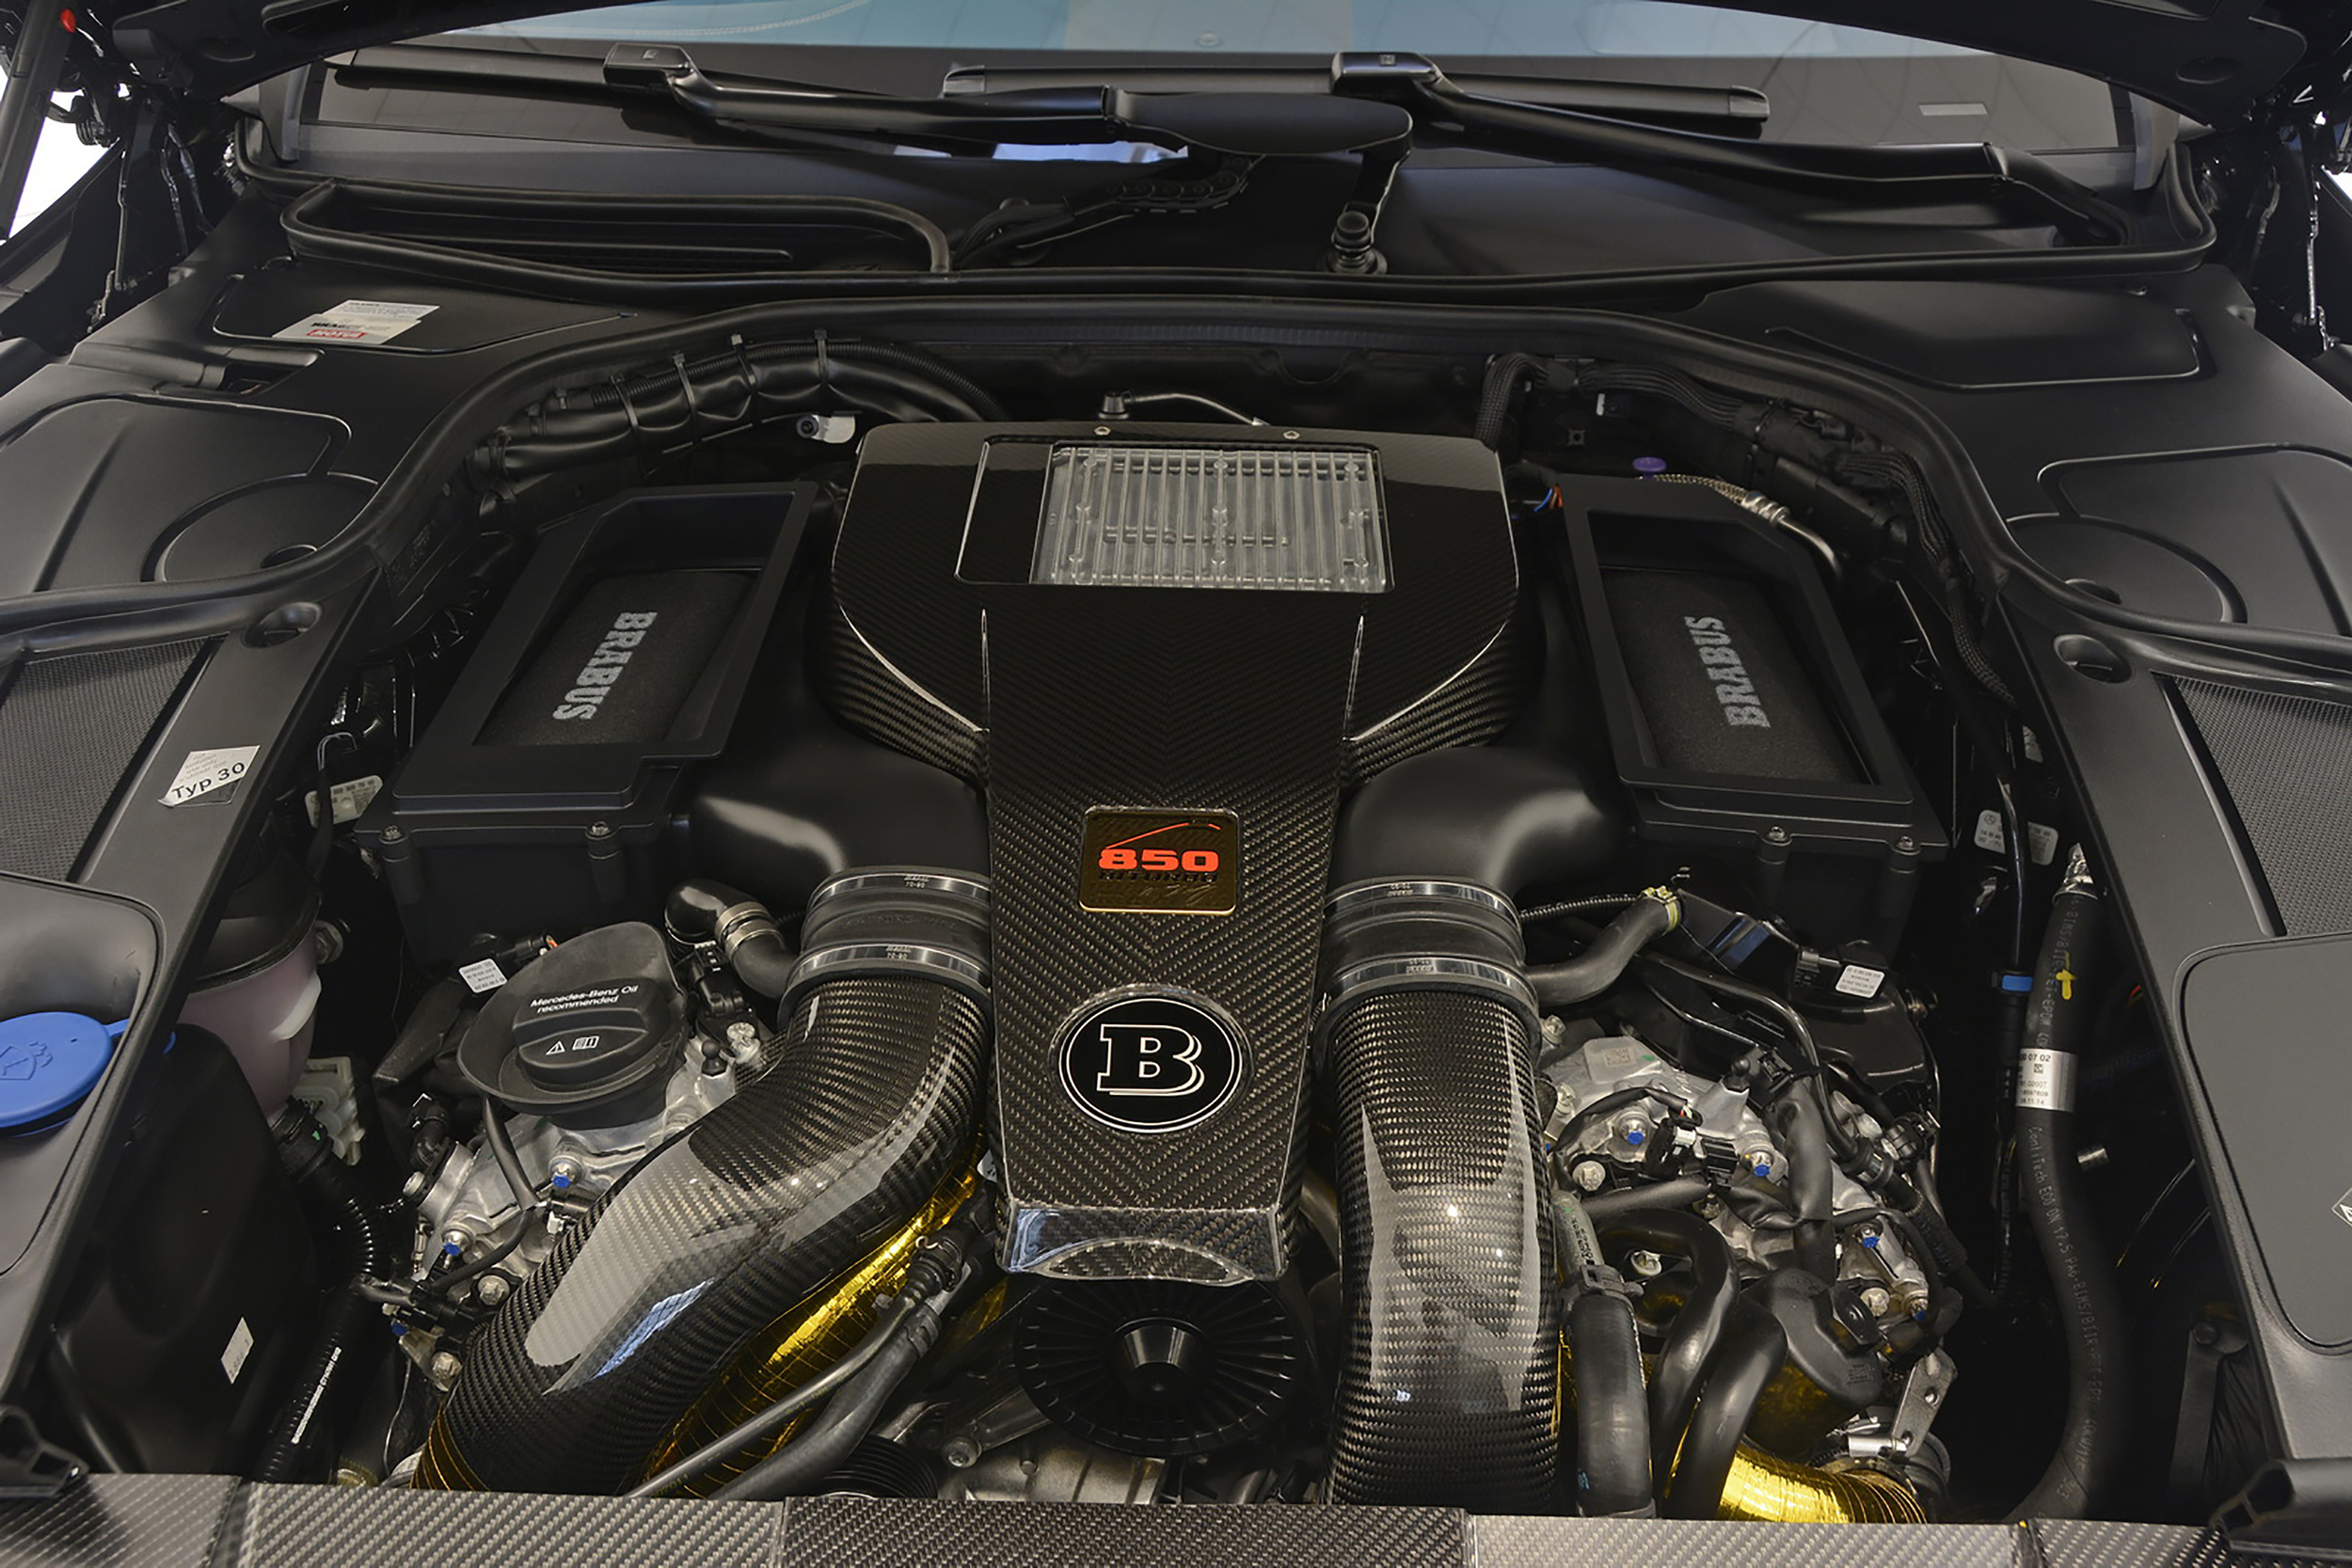 ' ' from the web at 'http://www.blogcdn.com/slideshows/images/slides/335/949/2/S3359492/slug/l/brabus-s-class-coupe-19-1.jpg'